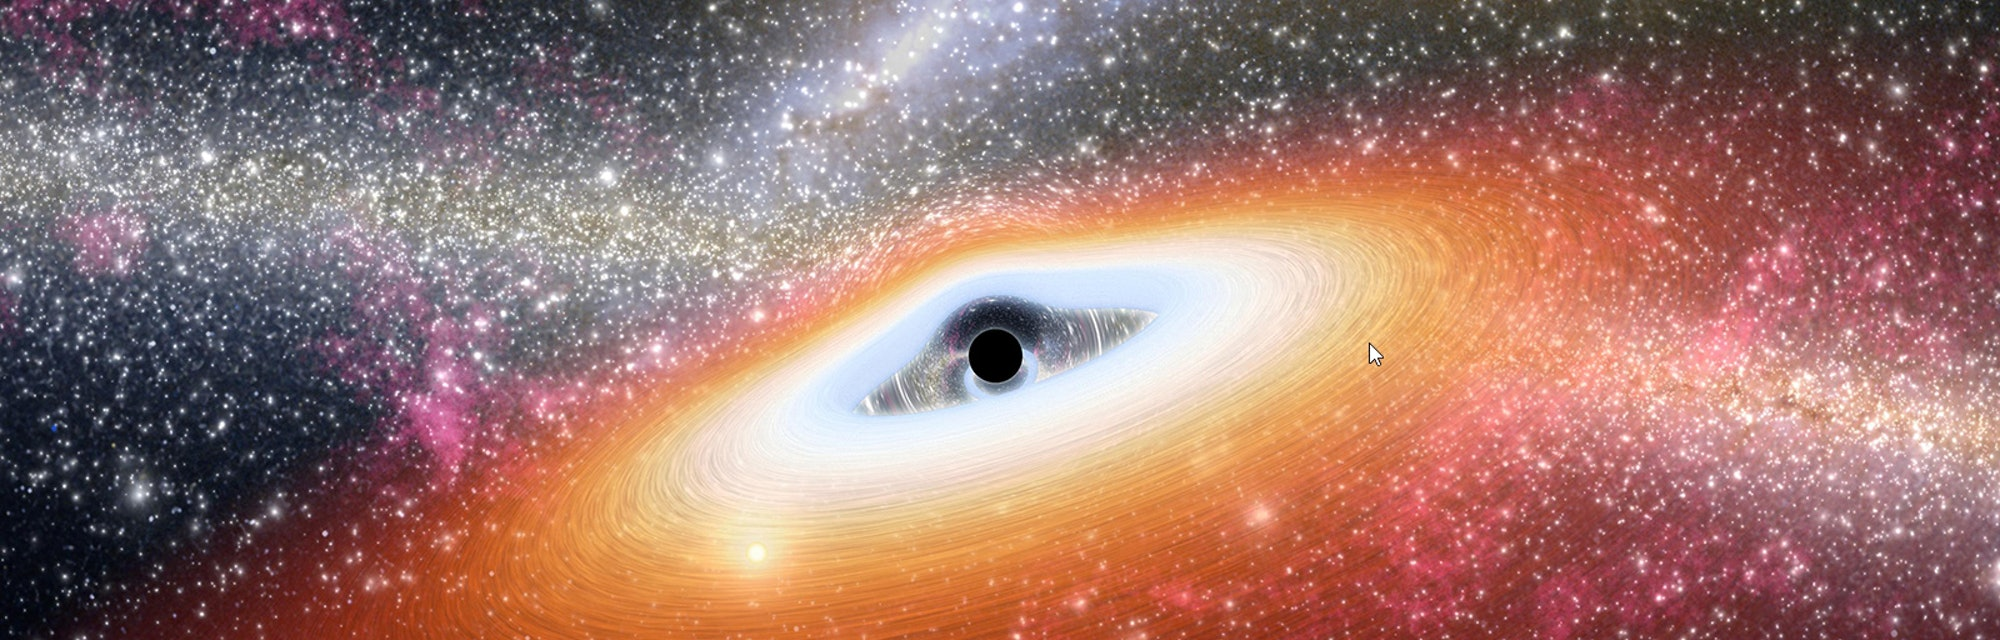 Supermassive black holes, such as the one seen in this artist's depiction, are known to lurk in the heart of almost all galaxies. New work suggests these massive beasts could have been born at the dawn of time.